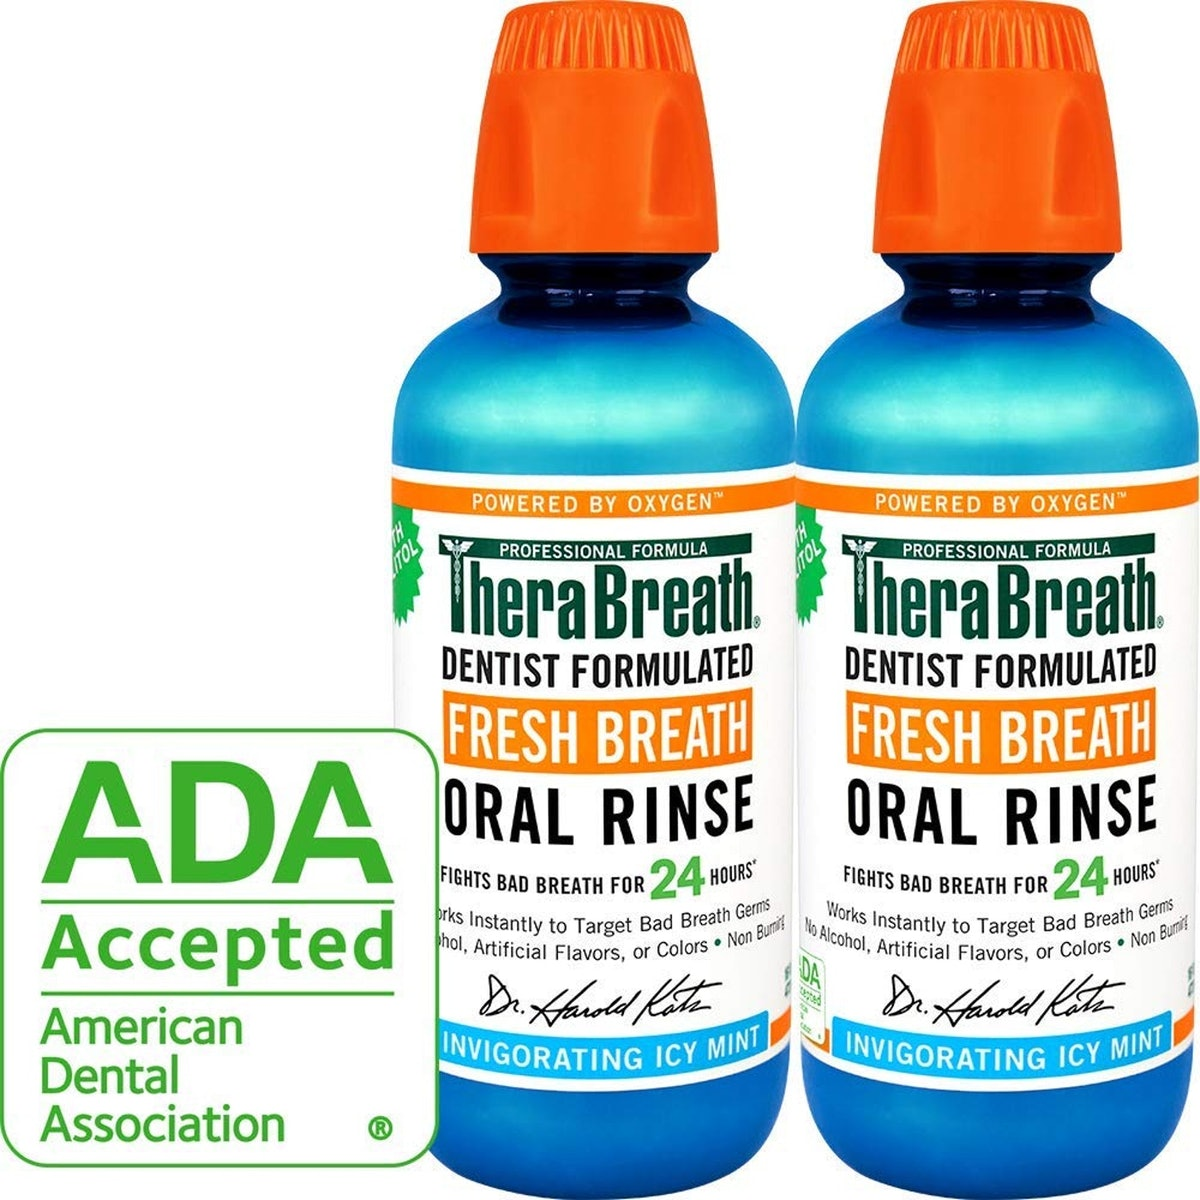 TheraBreath Oral Rinse (2-Pack)